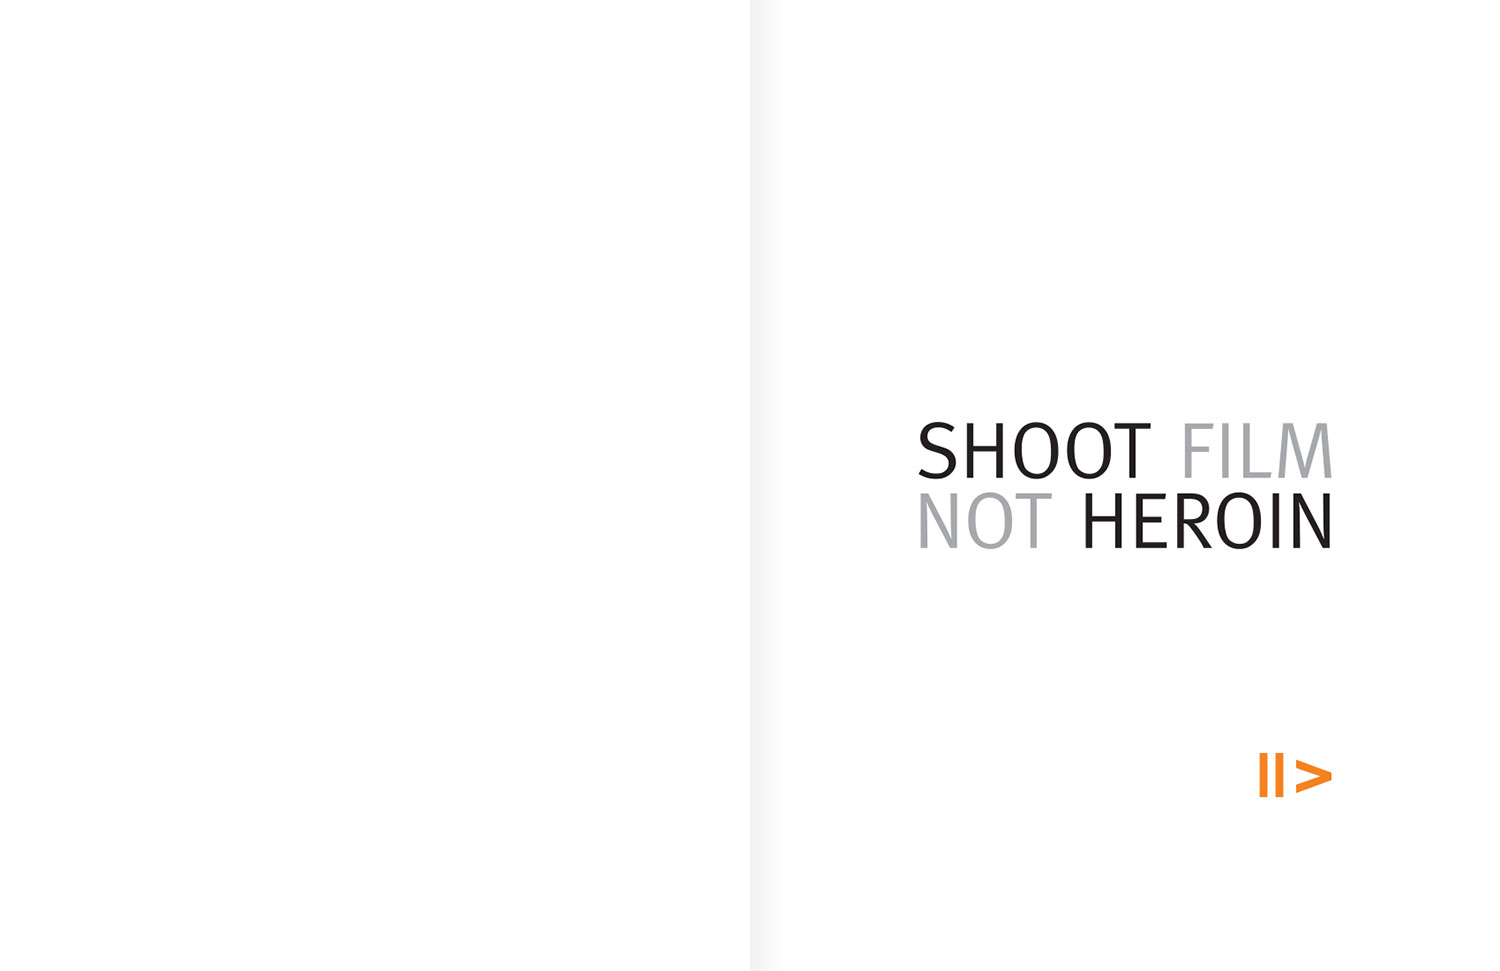 Shoot Film Not Heroin - Pitch book front cover